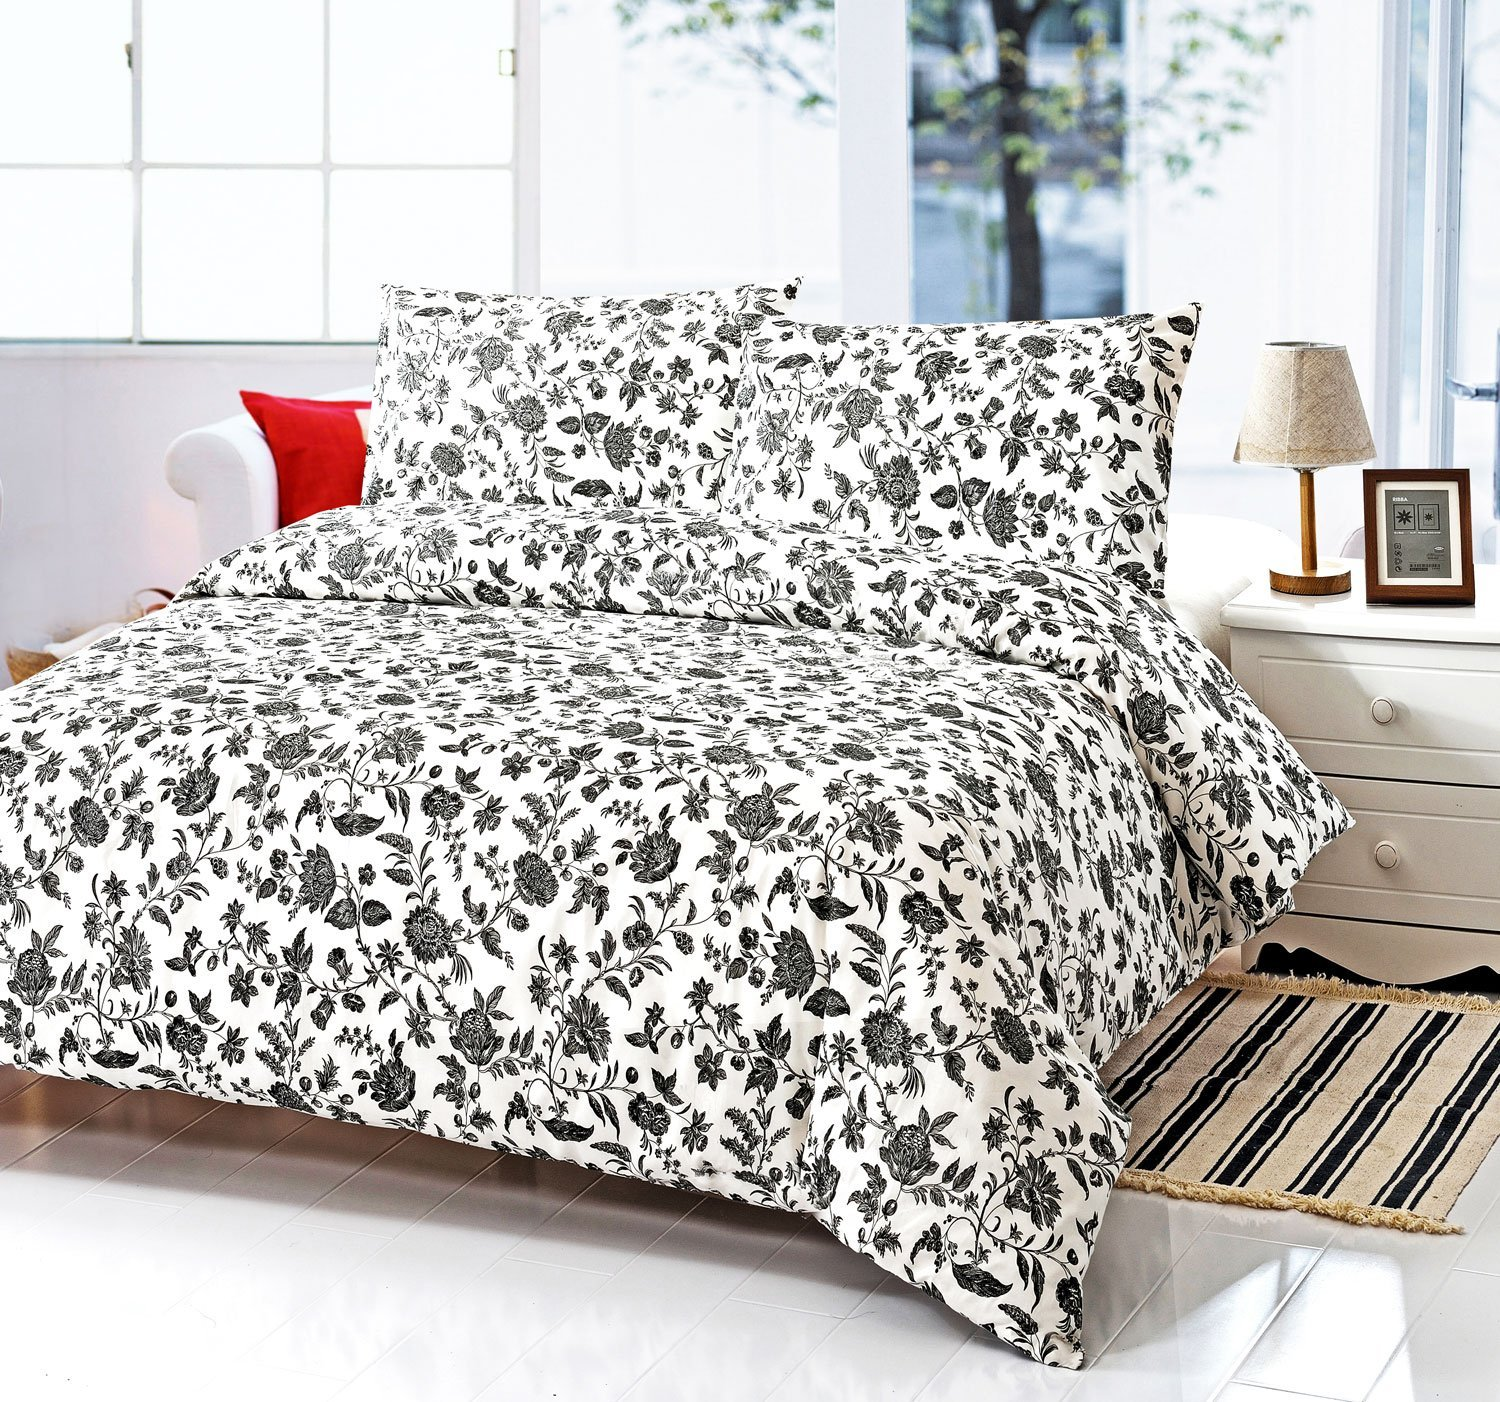 Floral Duvet Covers | White Duvet Cover Queen | Duvet Covers King